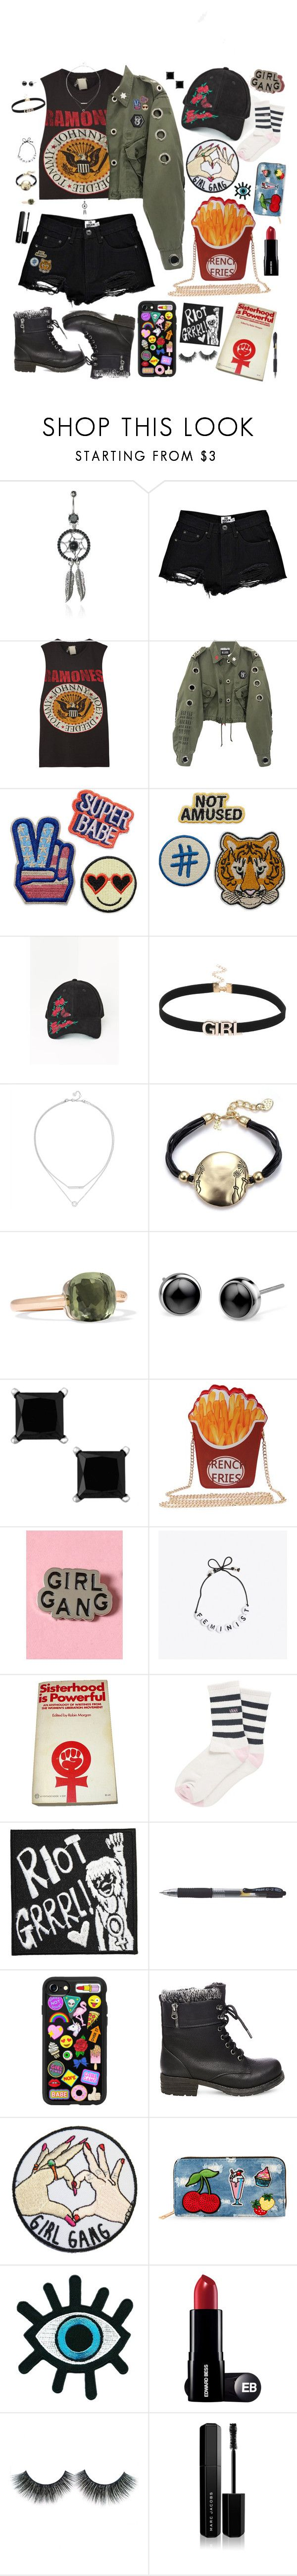 """""""Grrrl Power"""" by alexis-marie-burroughs ❤ liked on Polyvore featuring Boohoo, MadeWorn, Missguided, Pomellato, Bellastellas, Vans, Casetify, Steve Madden, Viola and Marc Jacobs"""